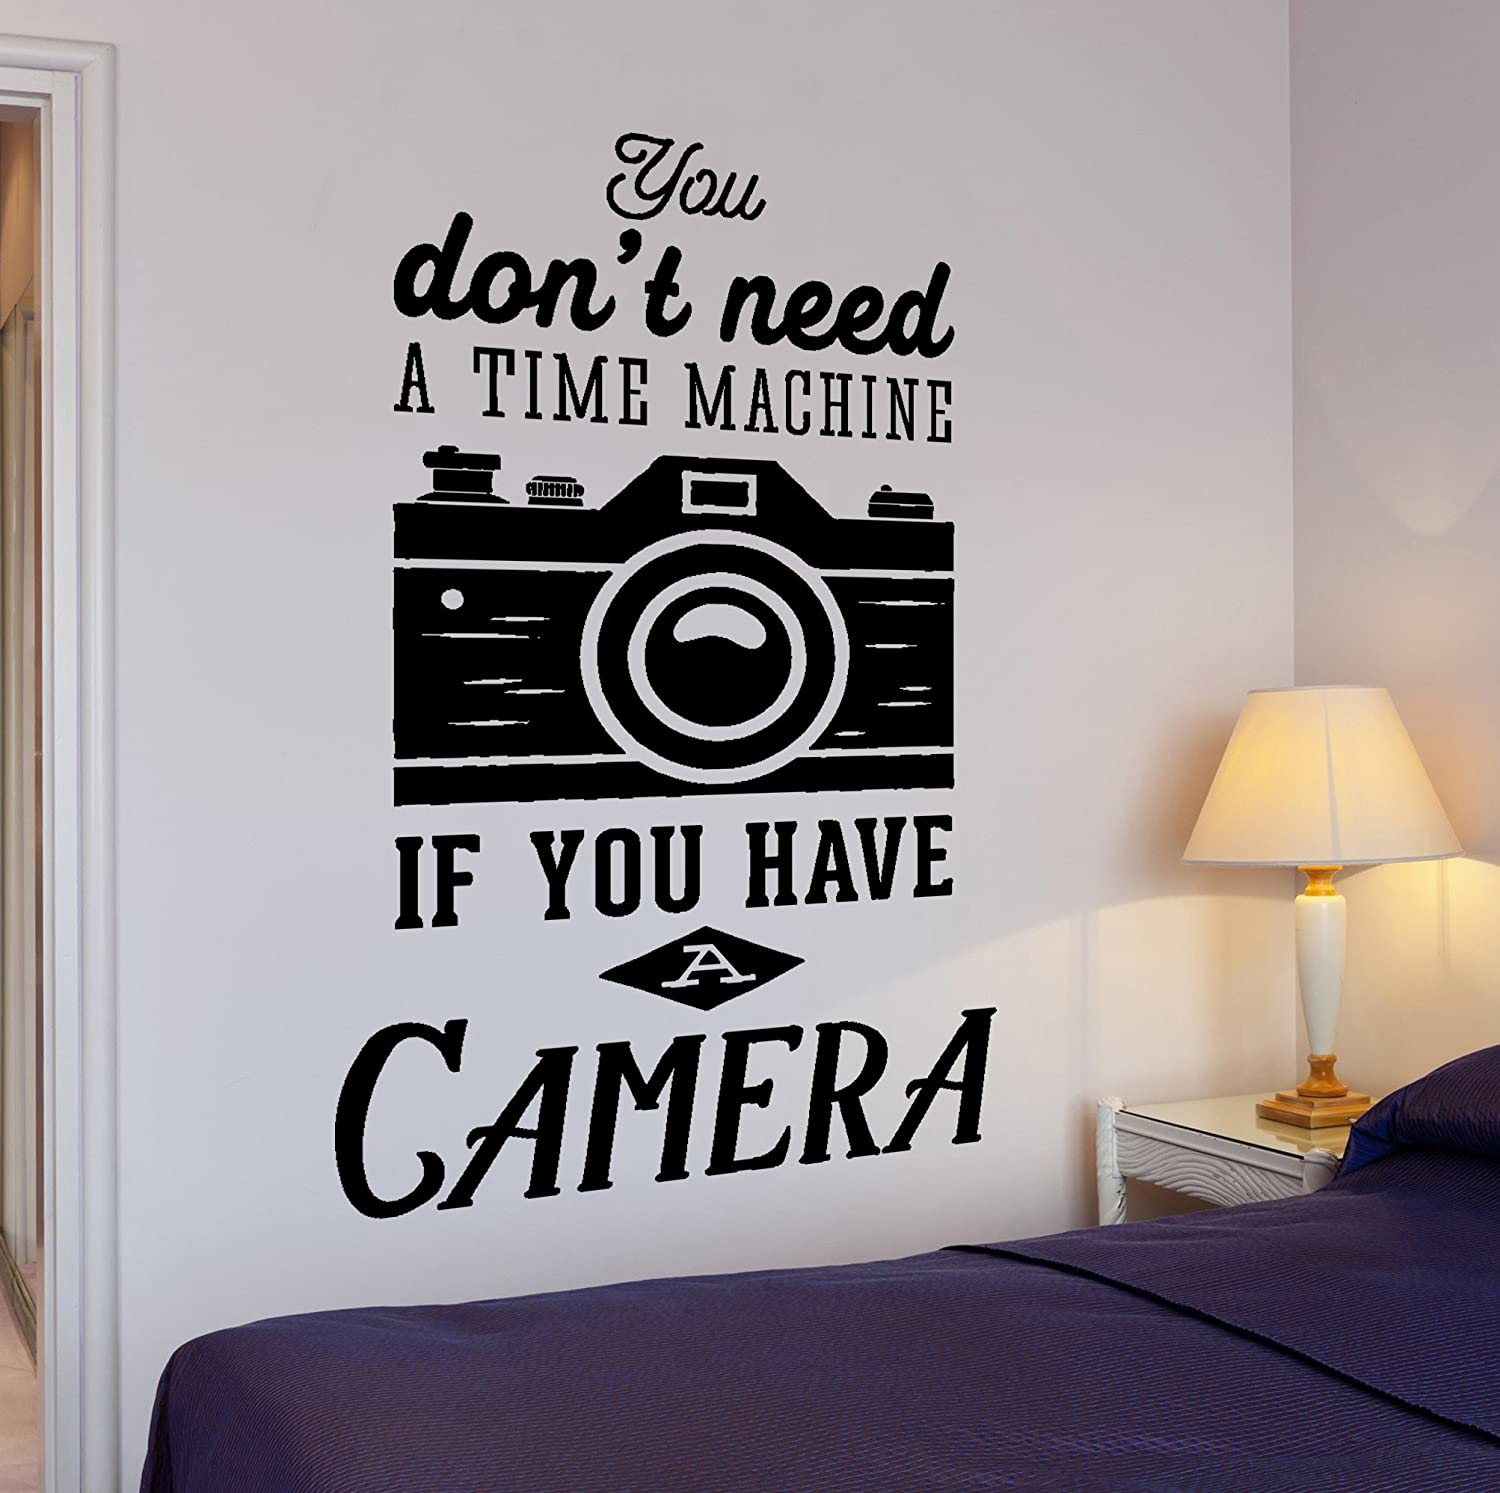 WallStickers4ever Large Wall Vinyl Decal Motivation Photograph Quote If You Have A Camera Decor z4301 Silver Metallic